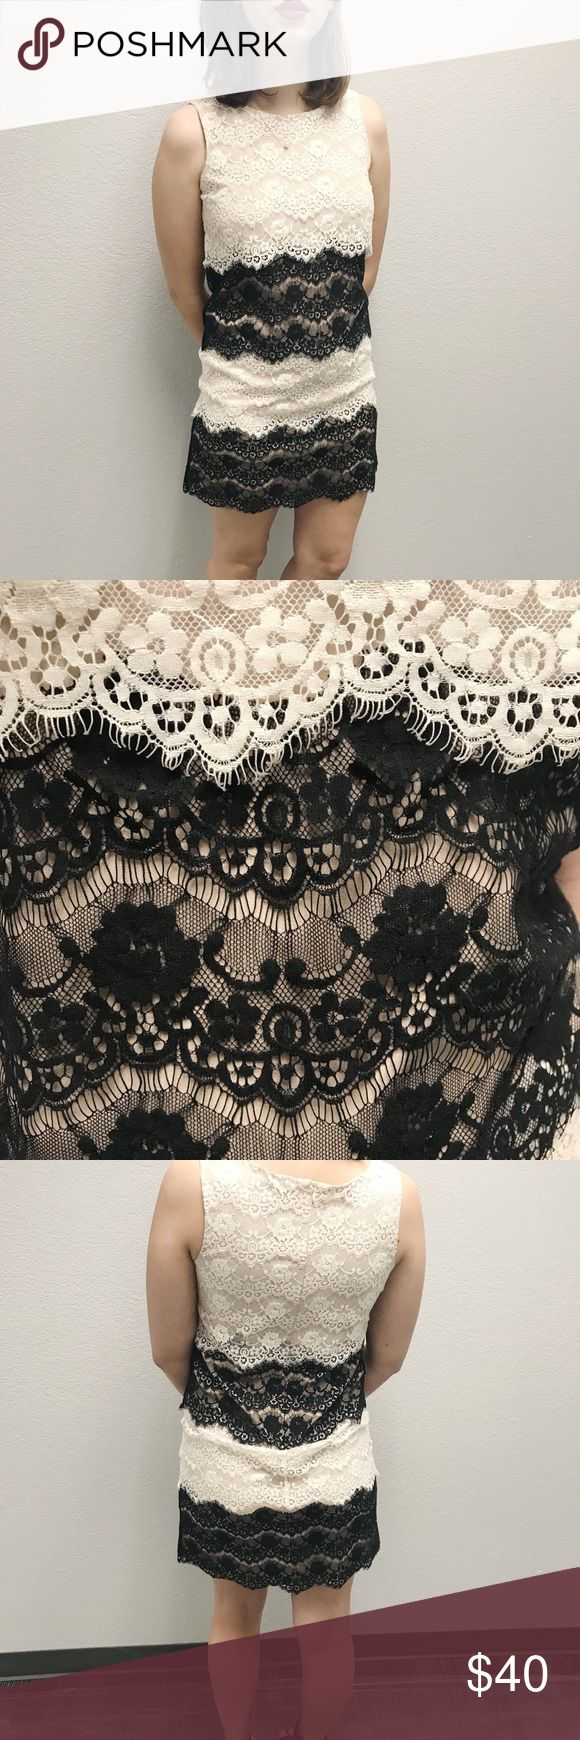 Jessica Simpson Lace Sheath Dress Cream, white,and black lace with nude underlay.  Only won once for high school dance.  Great for any special occasion or night out! Jessica Simpson Dresses Mini